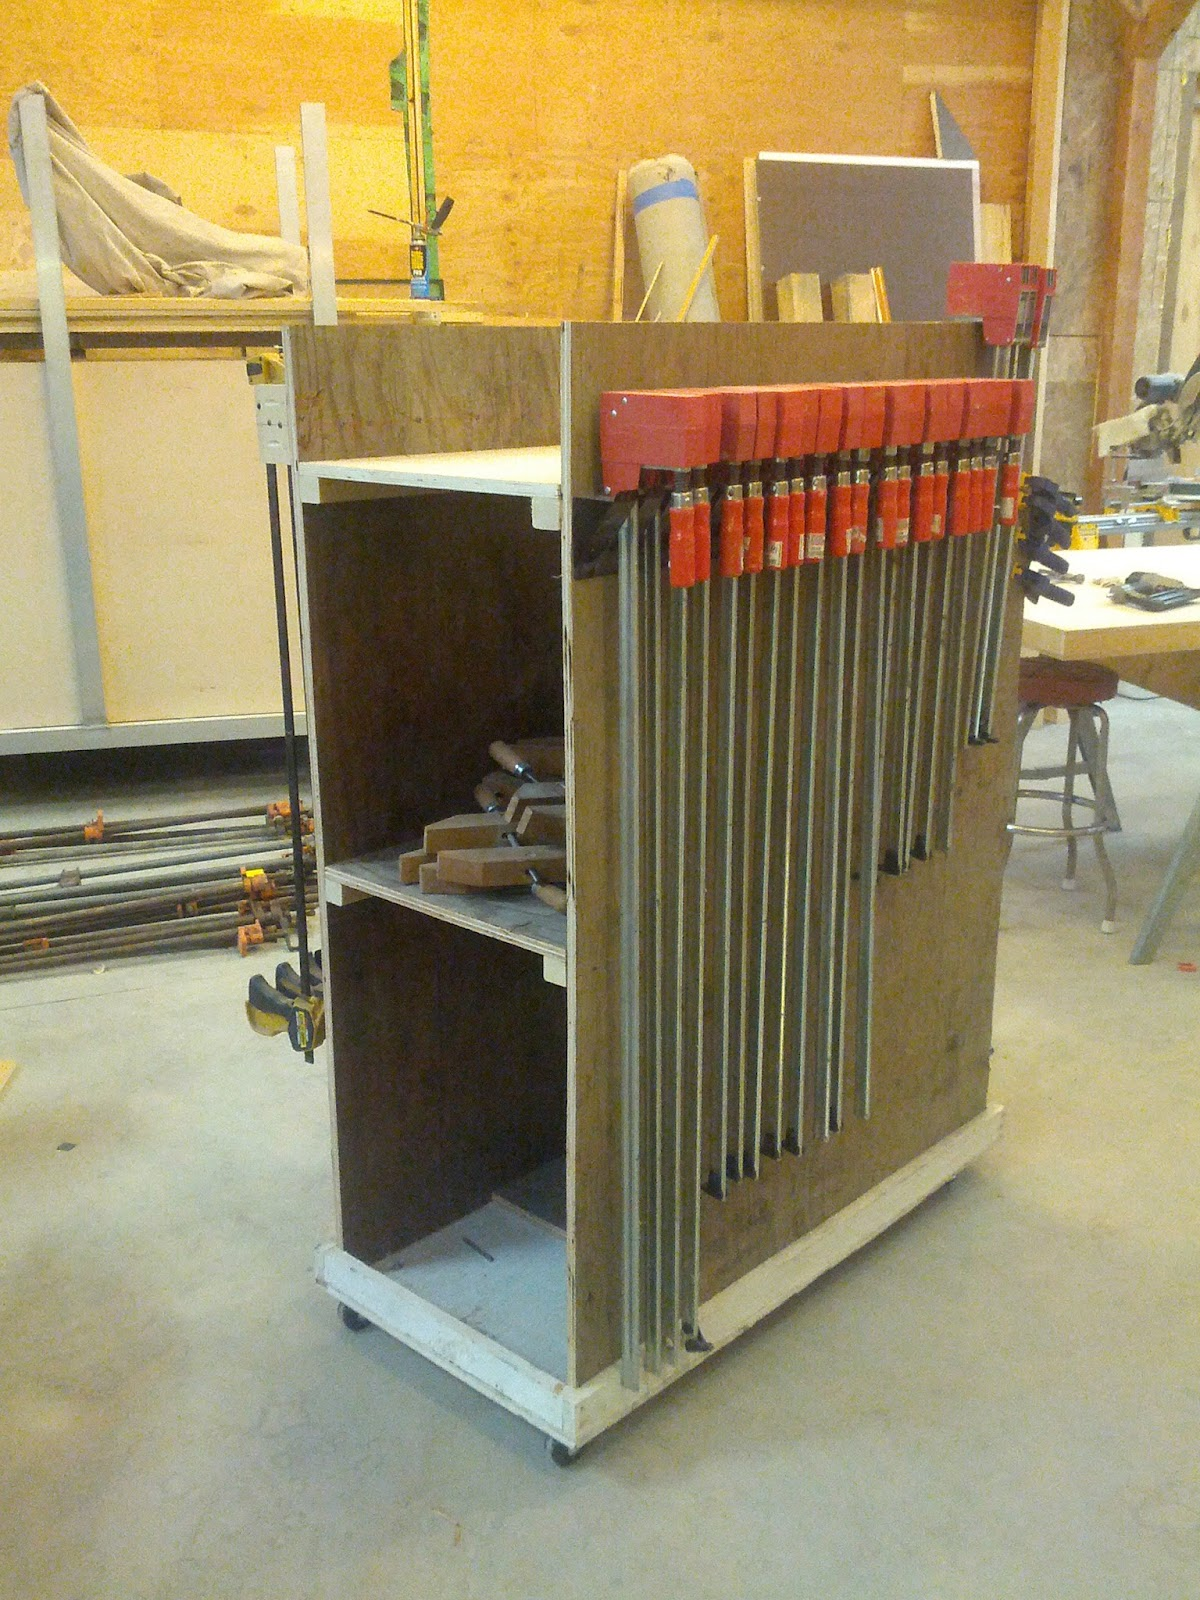 A View Of The Clamp Rack Showing The Side, Base, Half Shelf And Shelf.